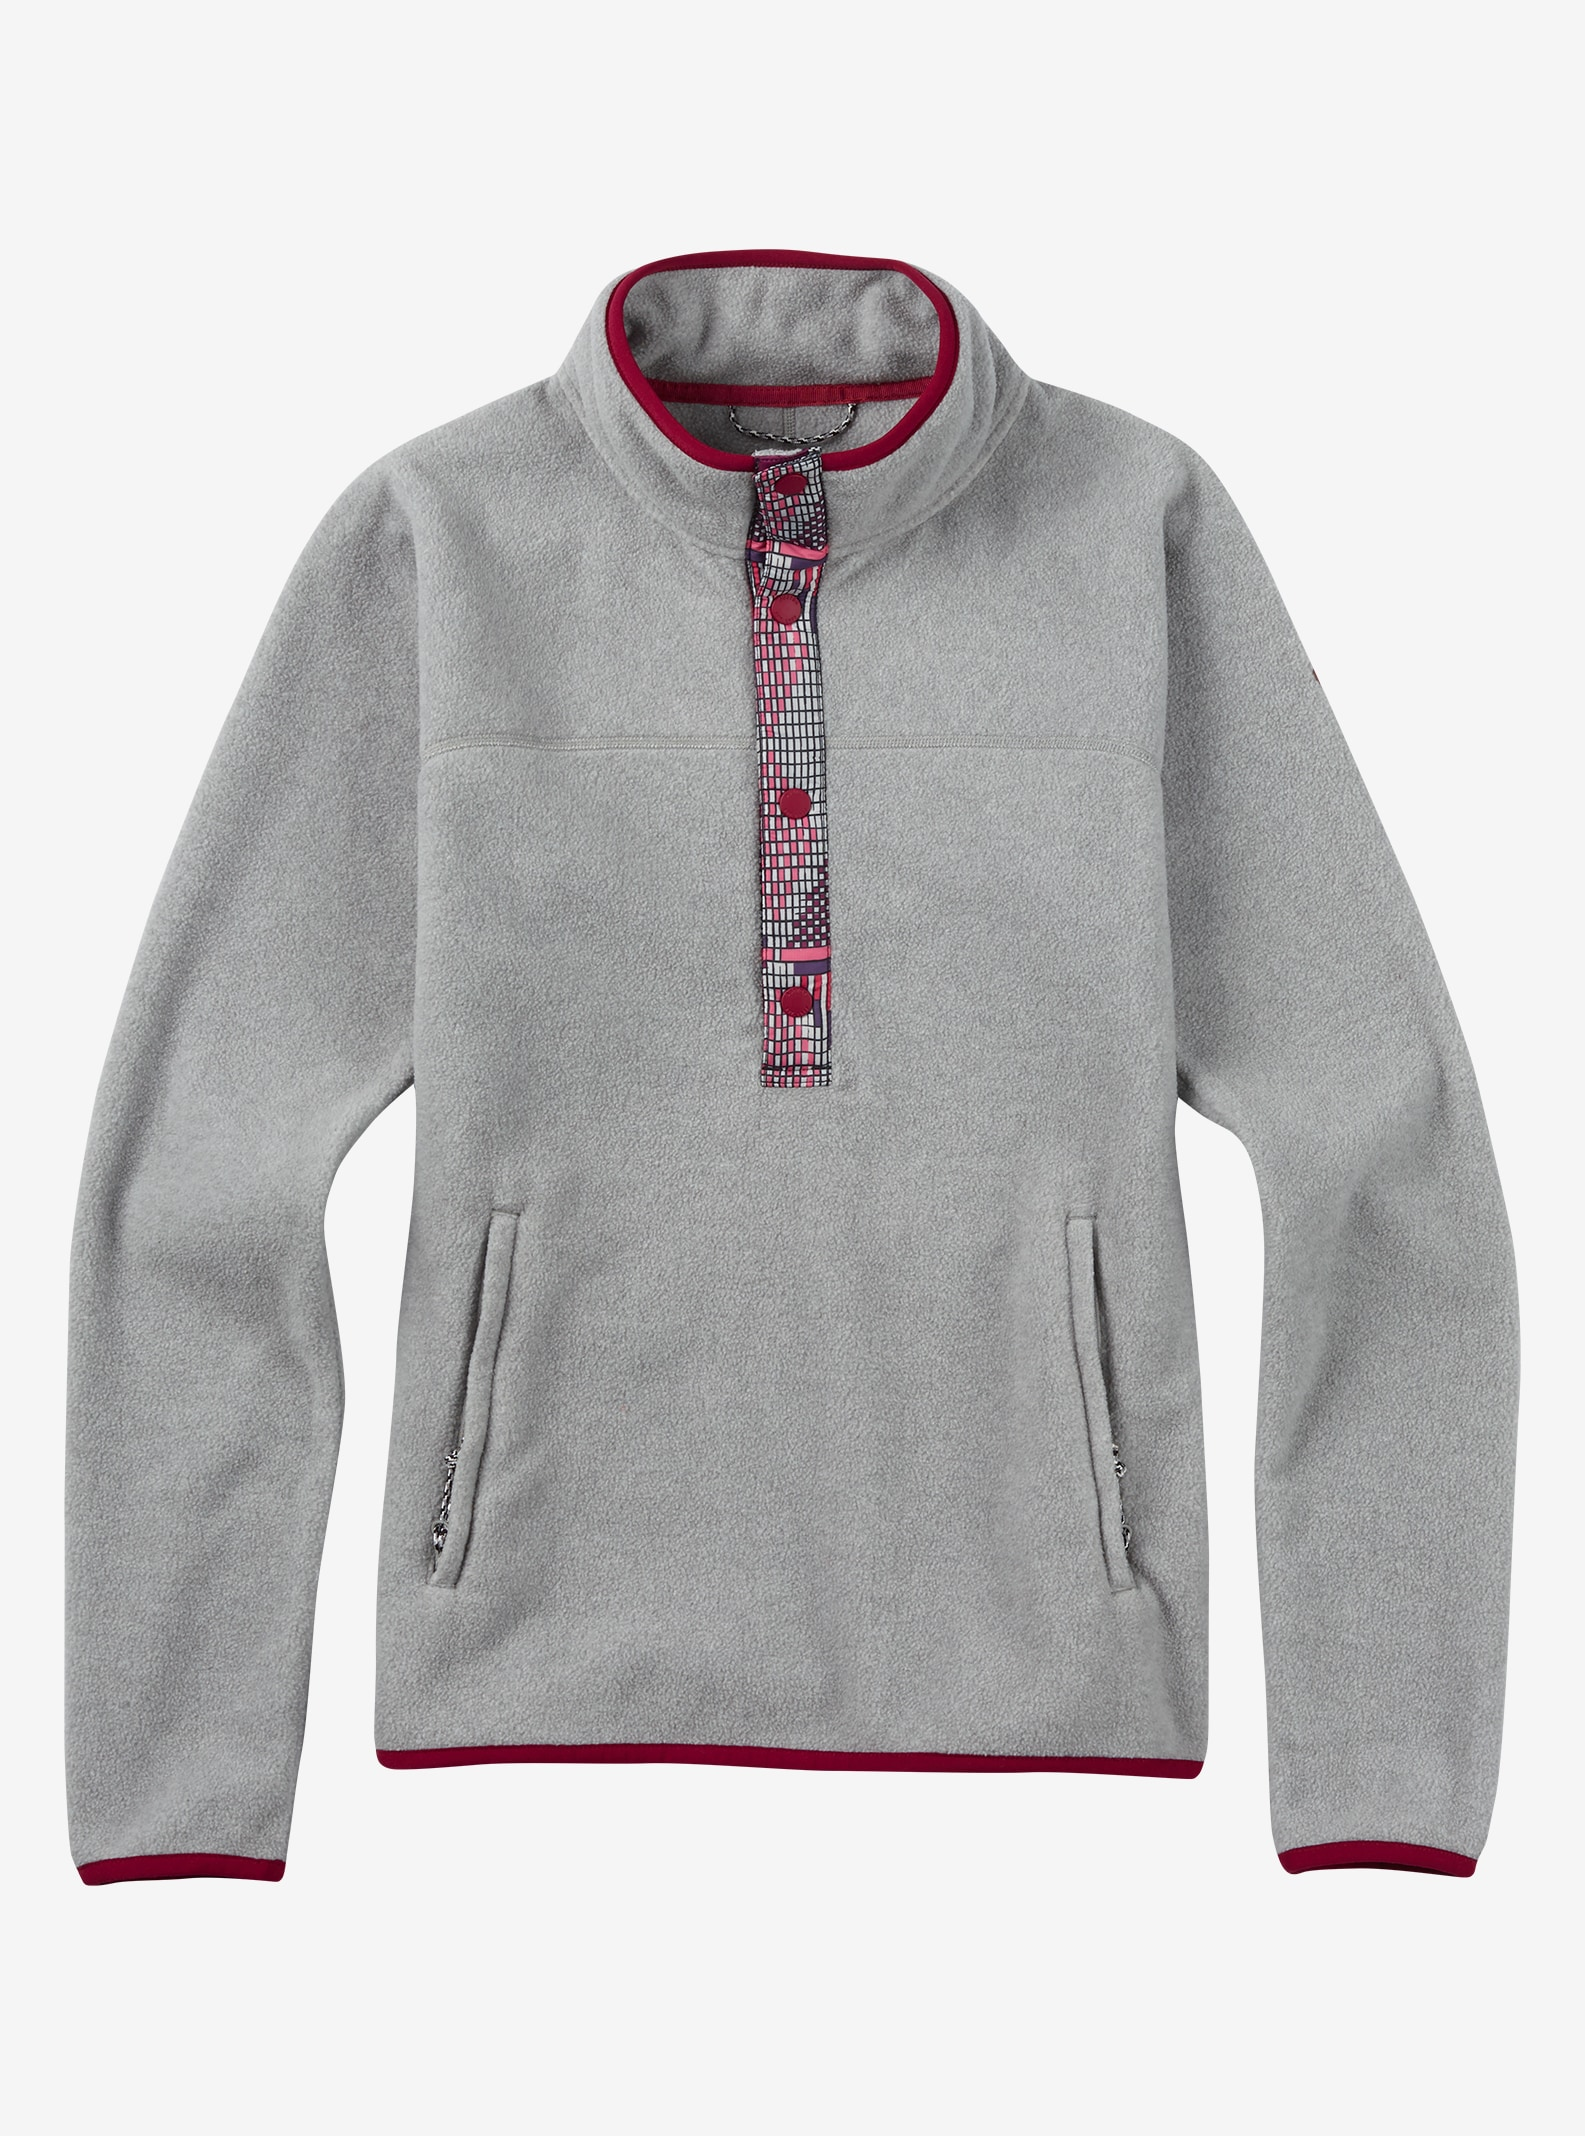 Burton Anouk Fleece Anorak shown in Monument Heather